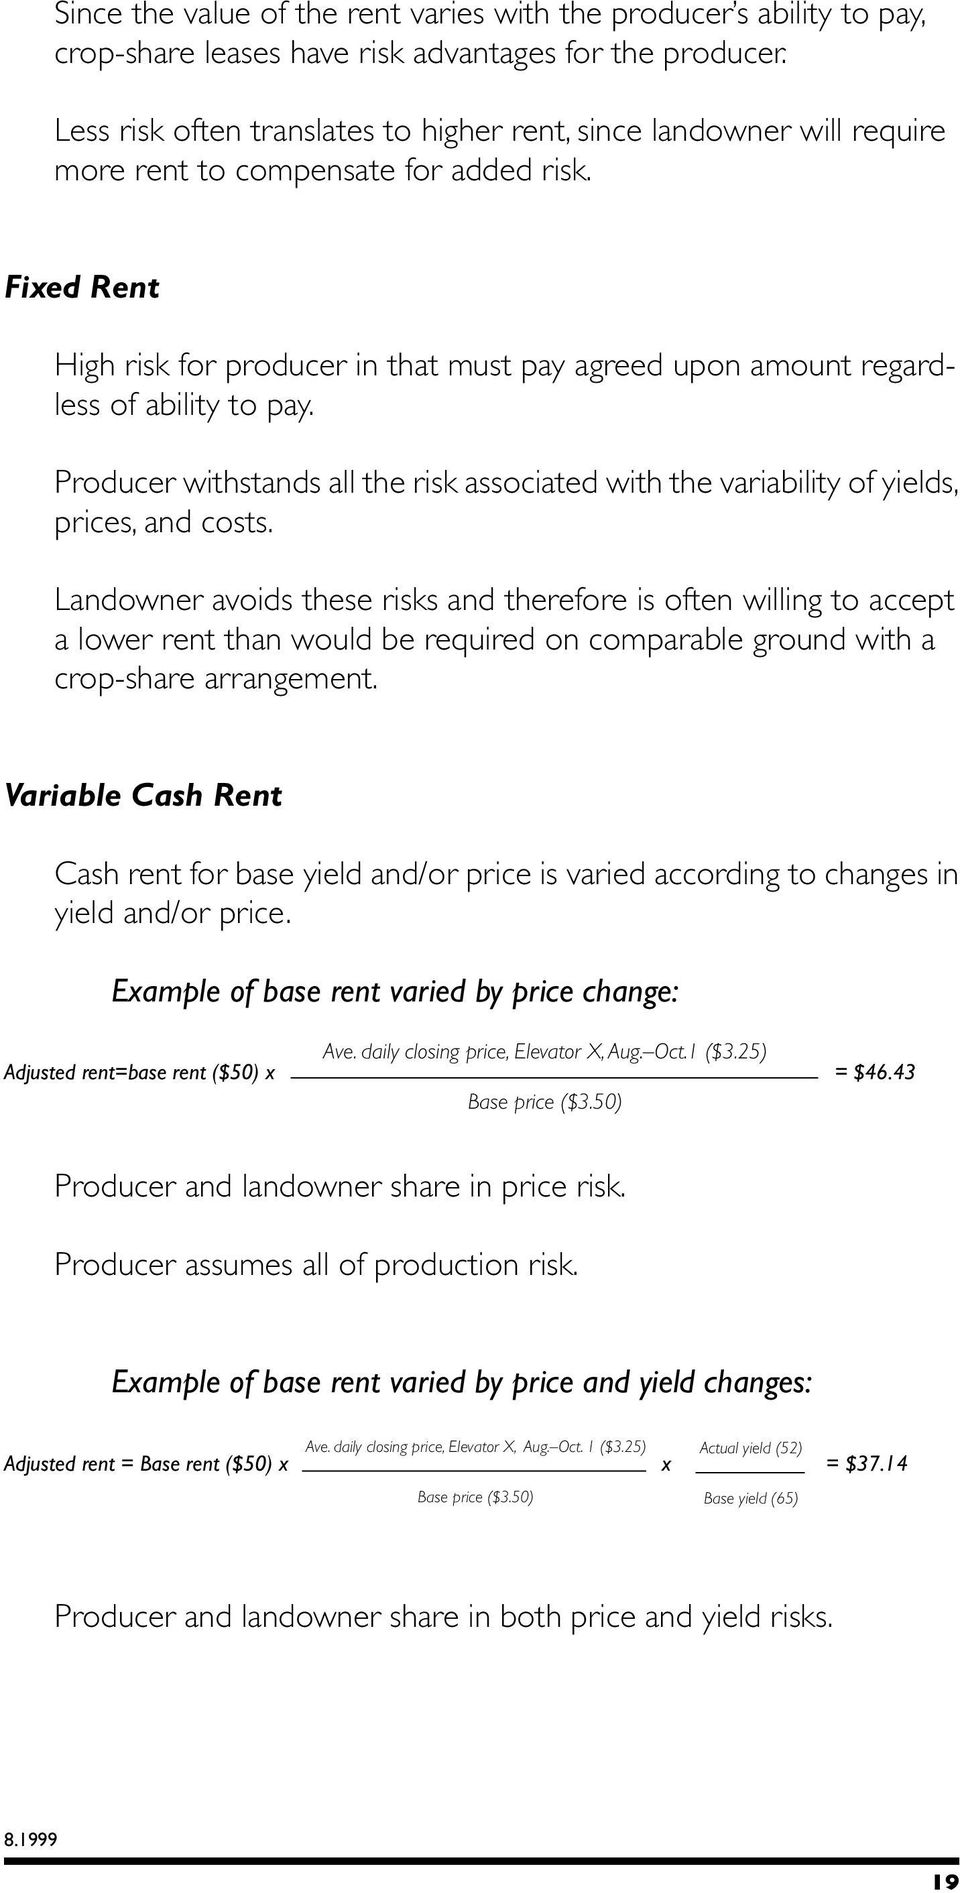 Fixed Rent High risk for producer in that must pay agreed upon amount regardless of ability to pay. Producer withstands all the risk associated with the variability of yields, prices, and costs.